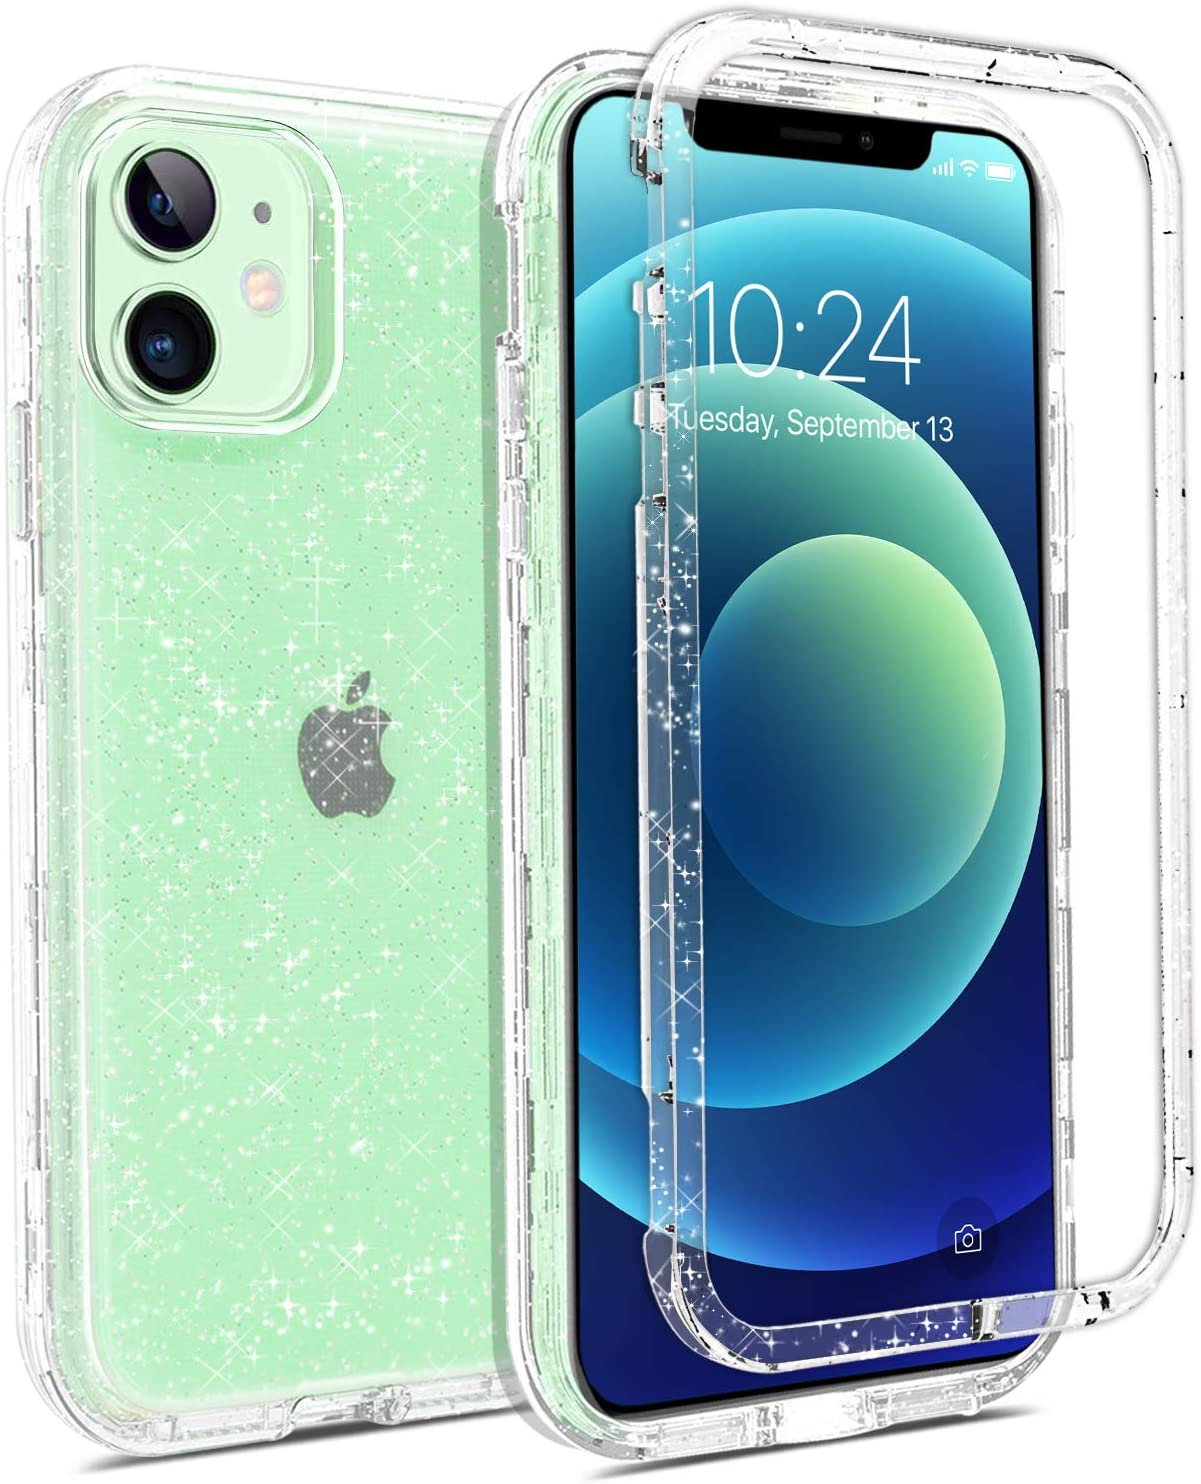 Coolwee Crystal Glitter Full Protective Case Compatible with iPhone 12 Mini Heavy Duty Hybrid 3 in 1 Rugged Shockproof Women Girls Transparent for Apple iPhone 12 Mini Shiny Clear Bling Sparkle